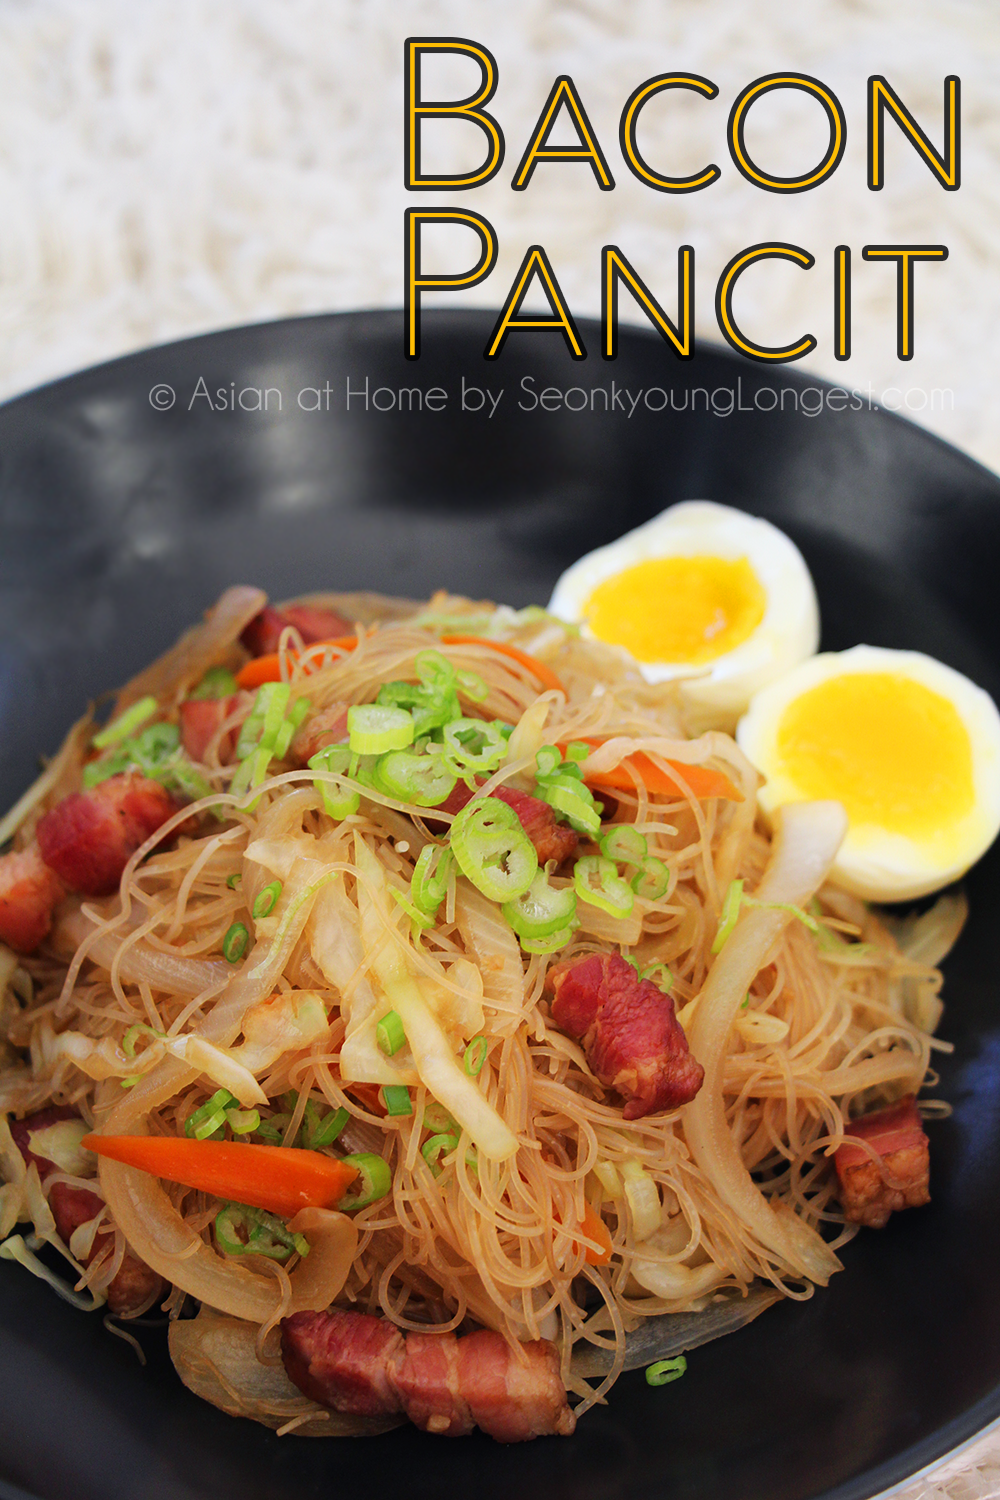 Bacon pancit recipe video seonkyoung longest forumfinder Image collections